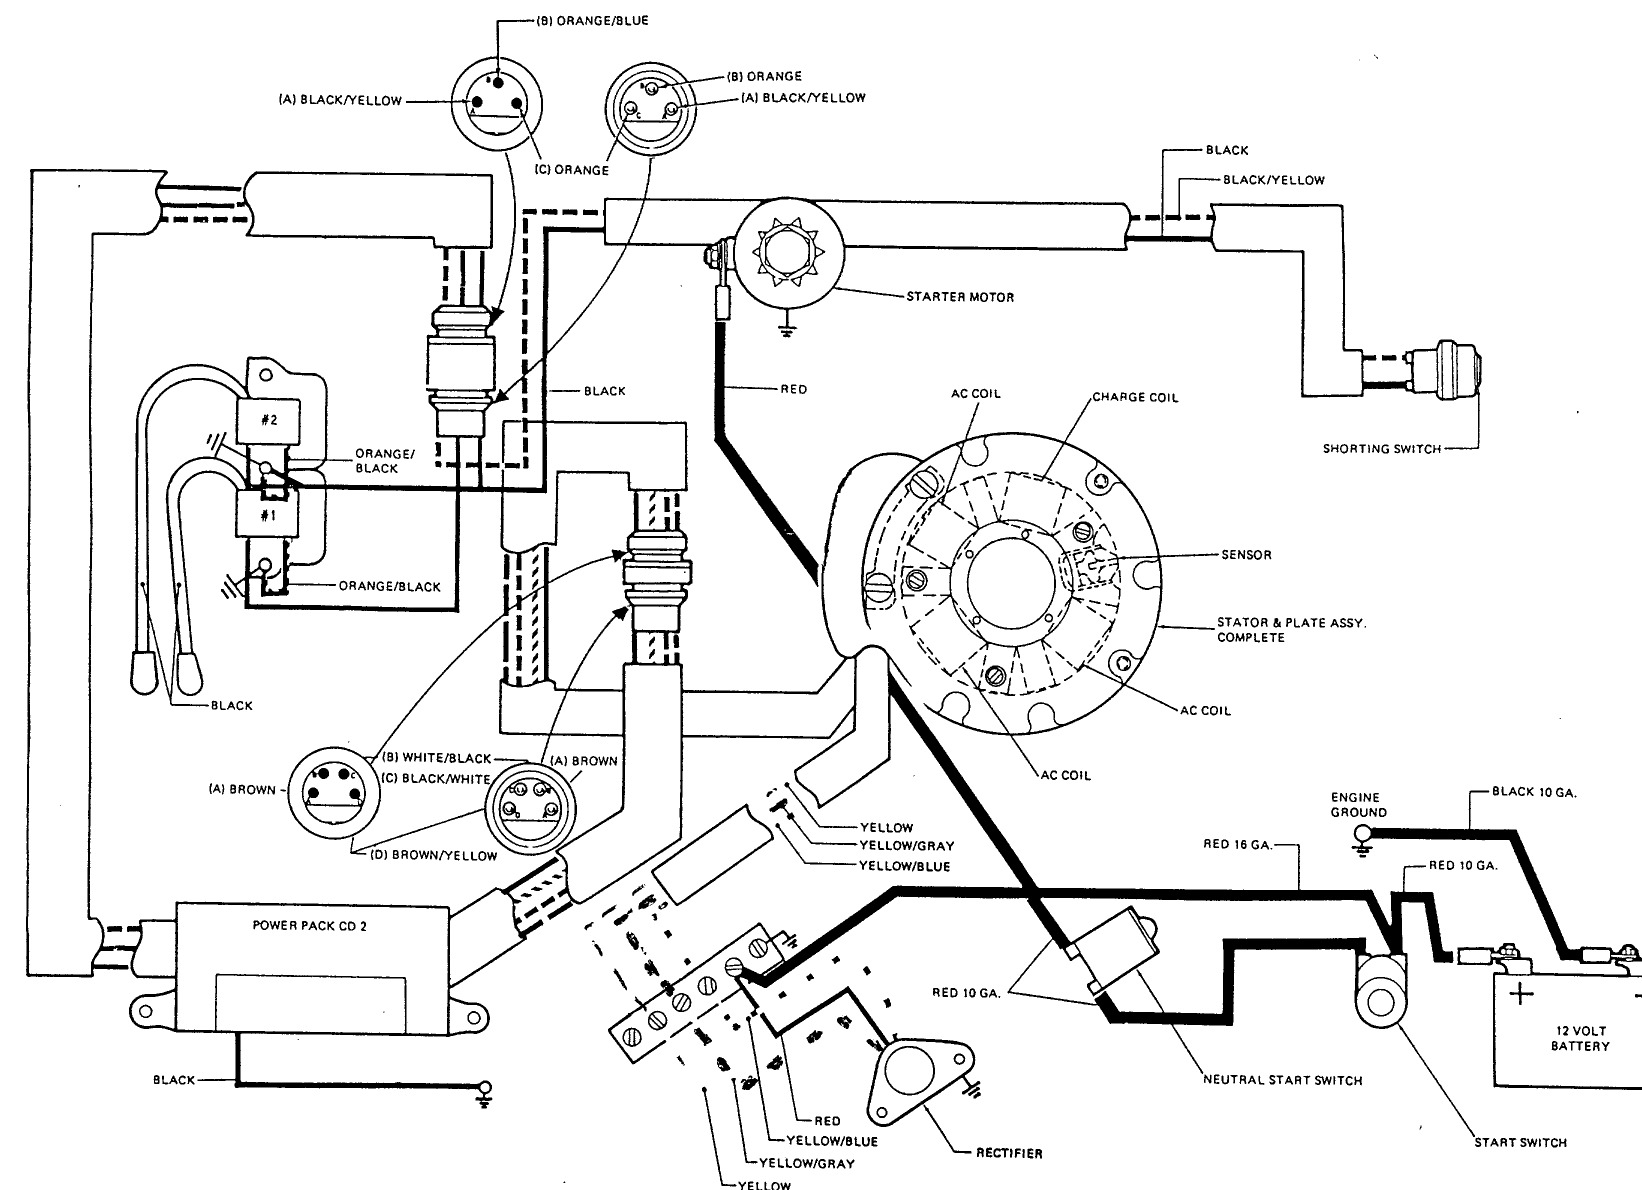 wiring diagram for a 88 8 hp motor example electrical wiring diagram u2022 rh huntervalleyhotels co